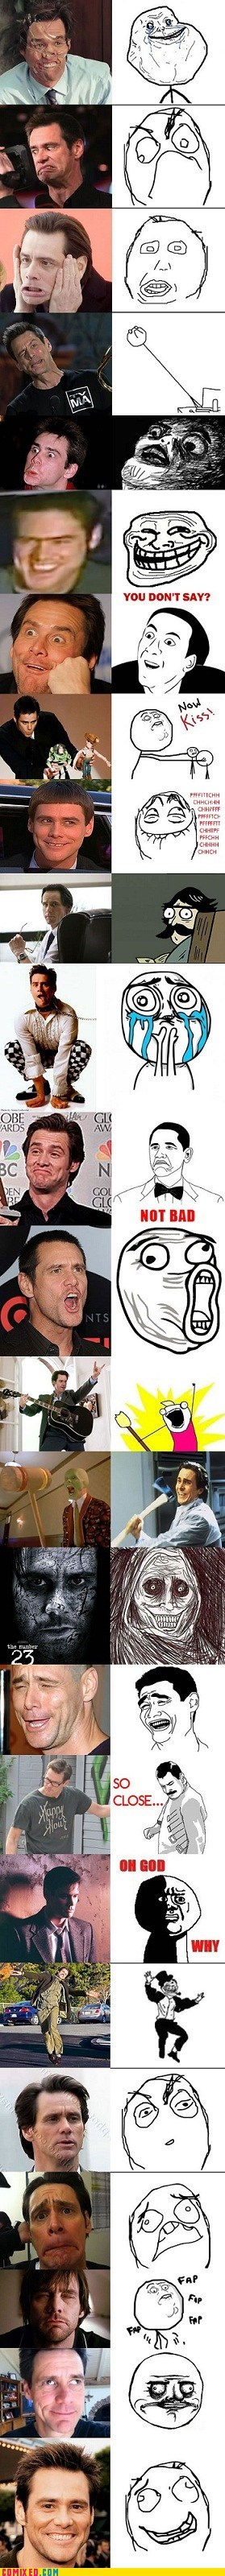 best of week,career,celeb,jim carrey,many faces,rage faces,the internets